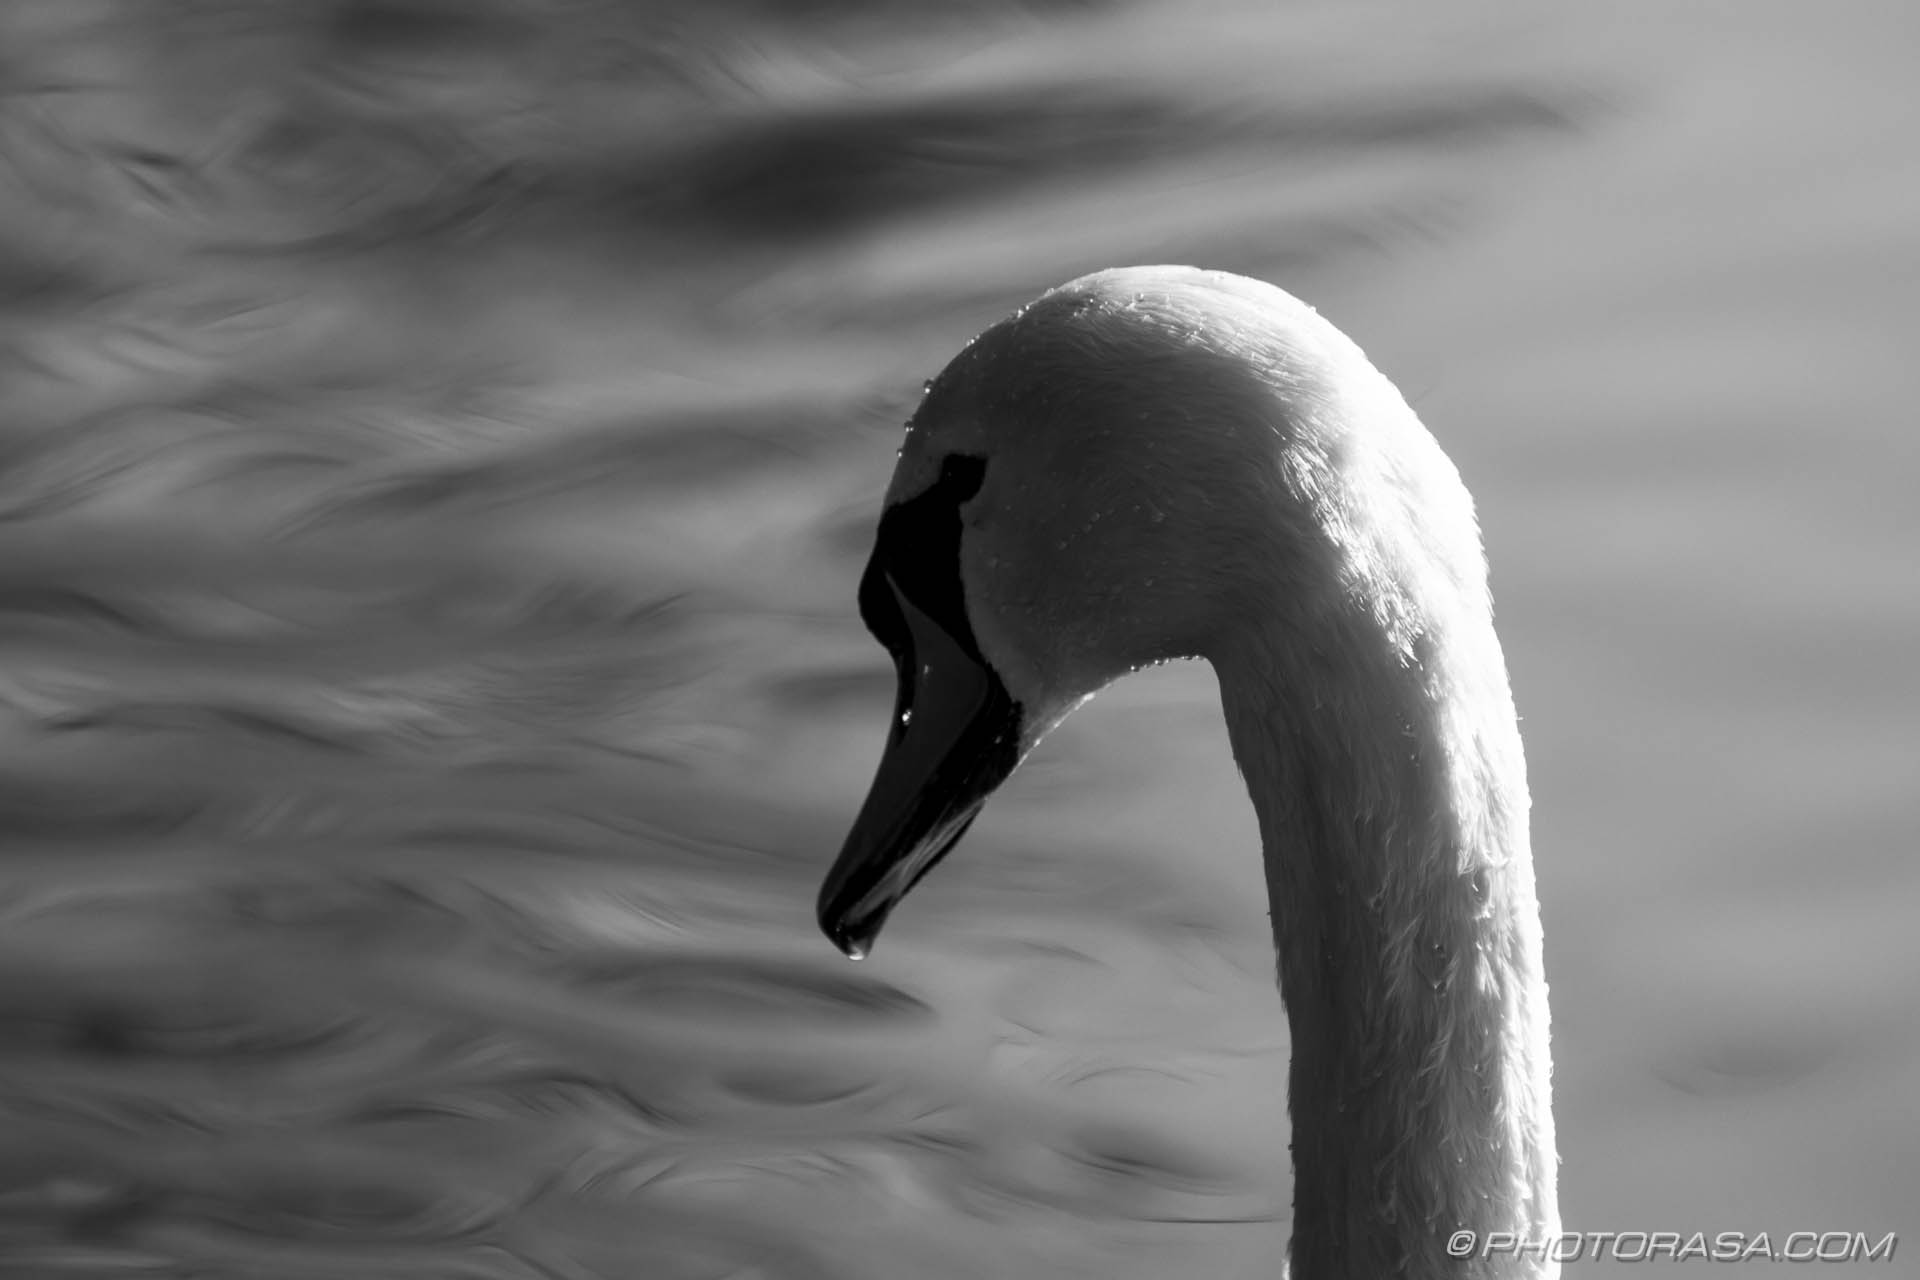 http://photorasa.com/animals/birds/art-swans/attachment/swan-and-water-ripples/